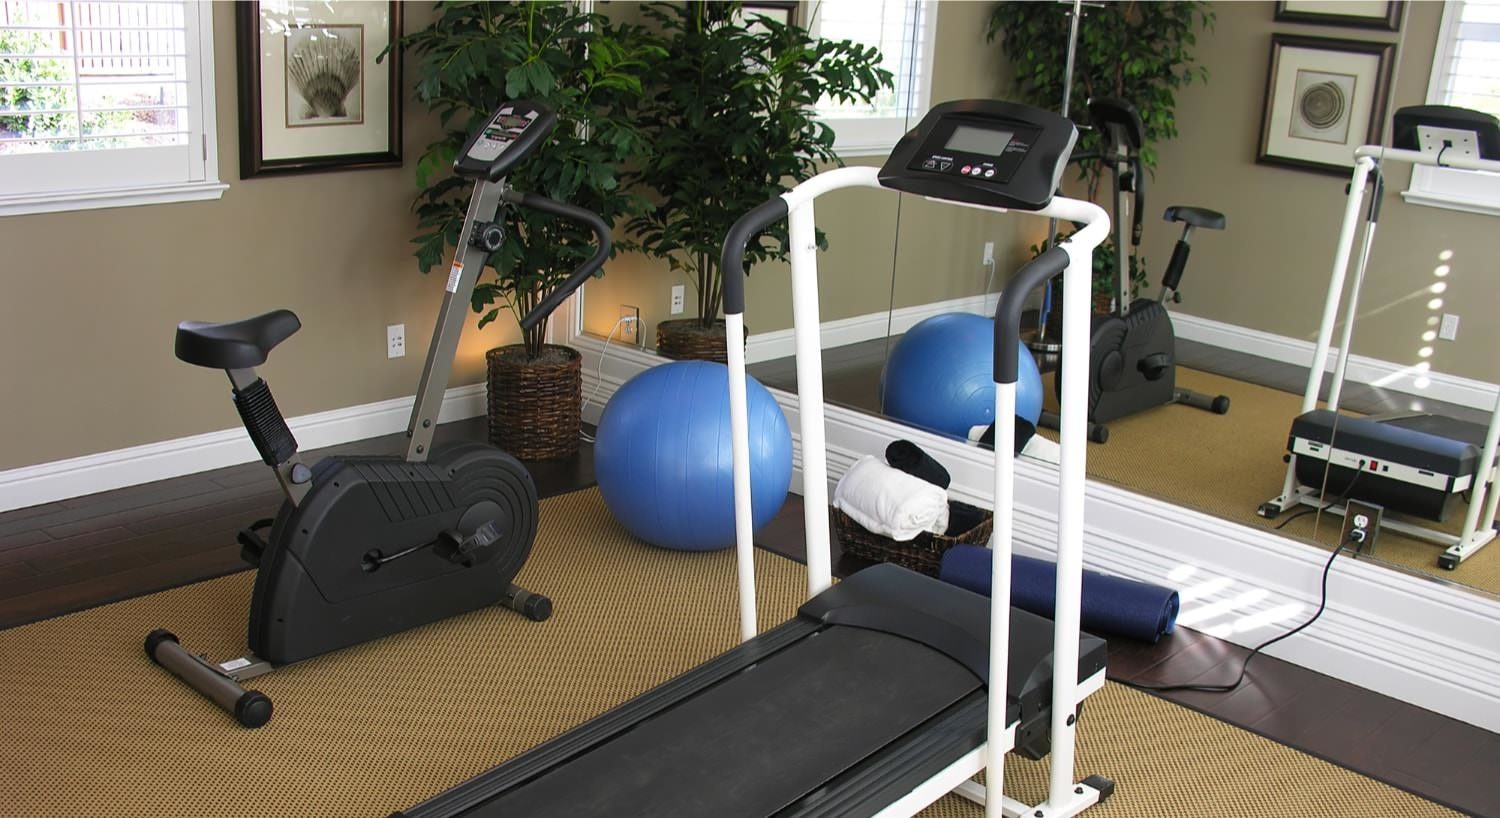 Room with stationary bike and treadmill